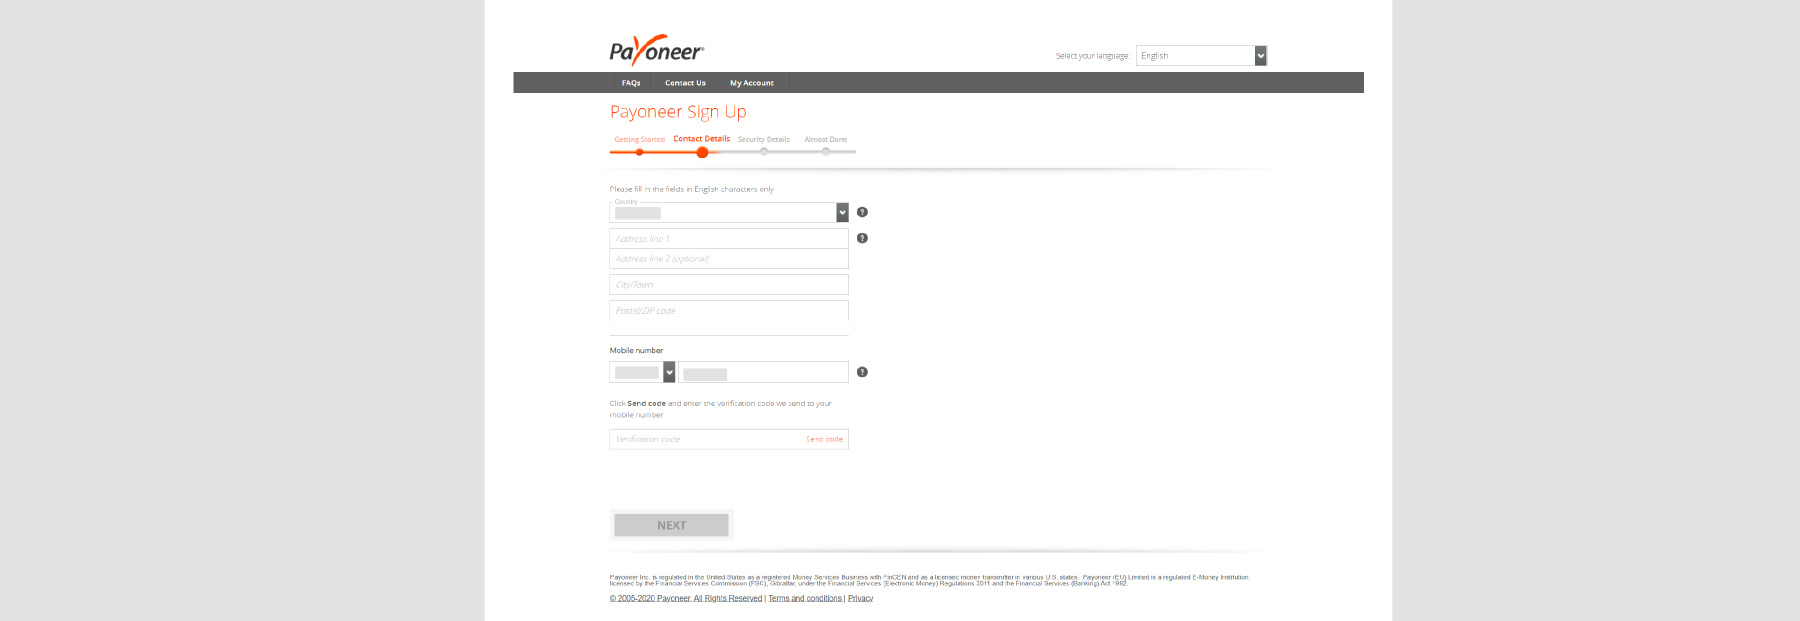 payoneer sign up step 5